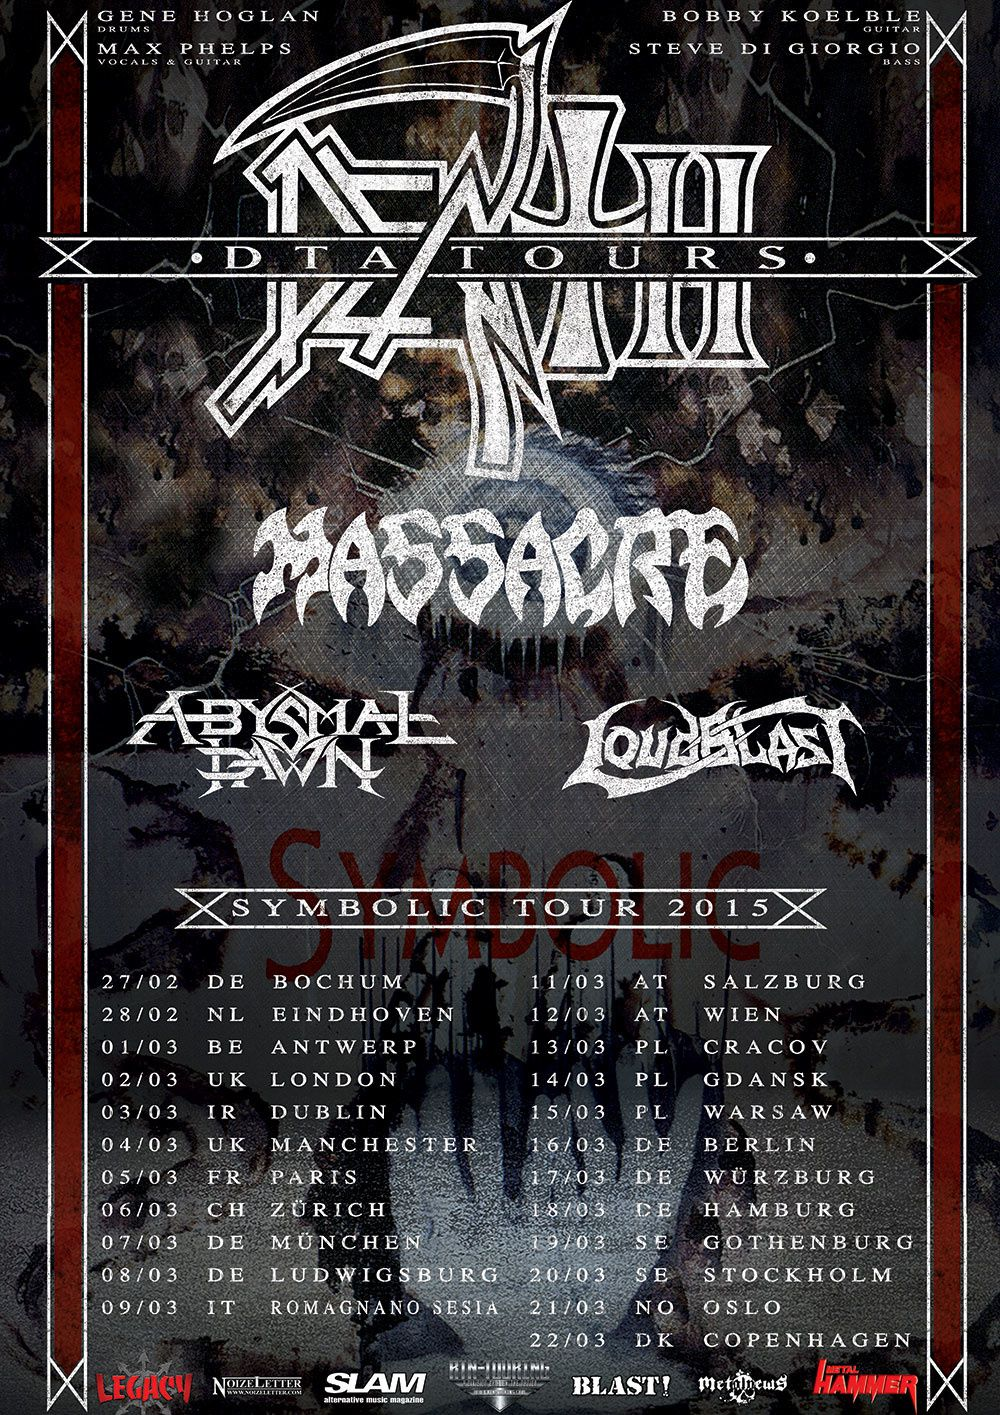 DEATH DTA on tour in Europe in spring